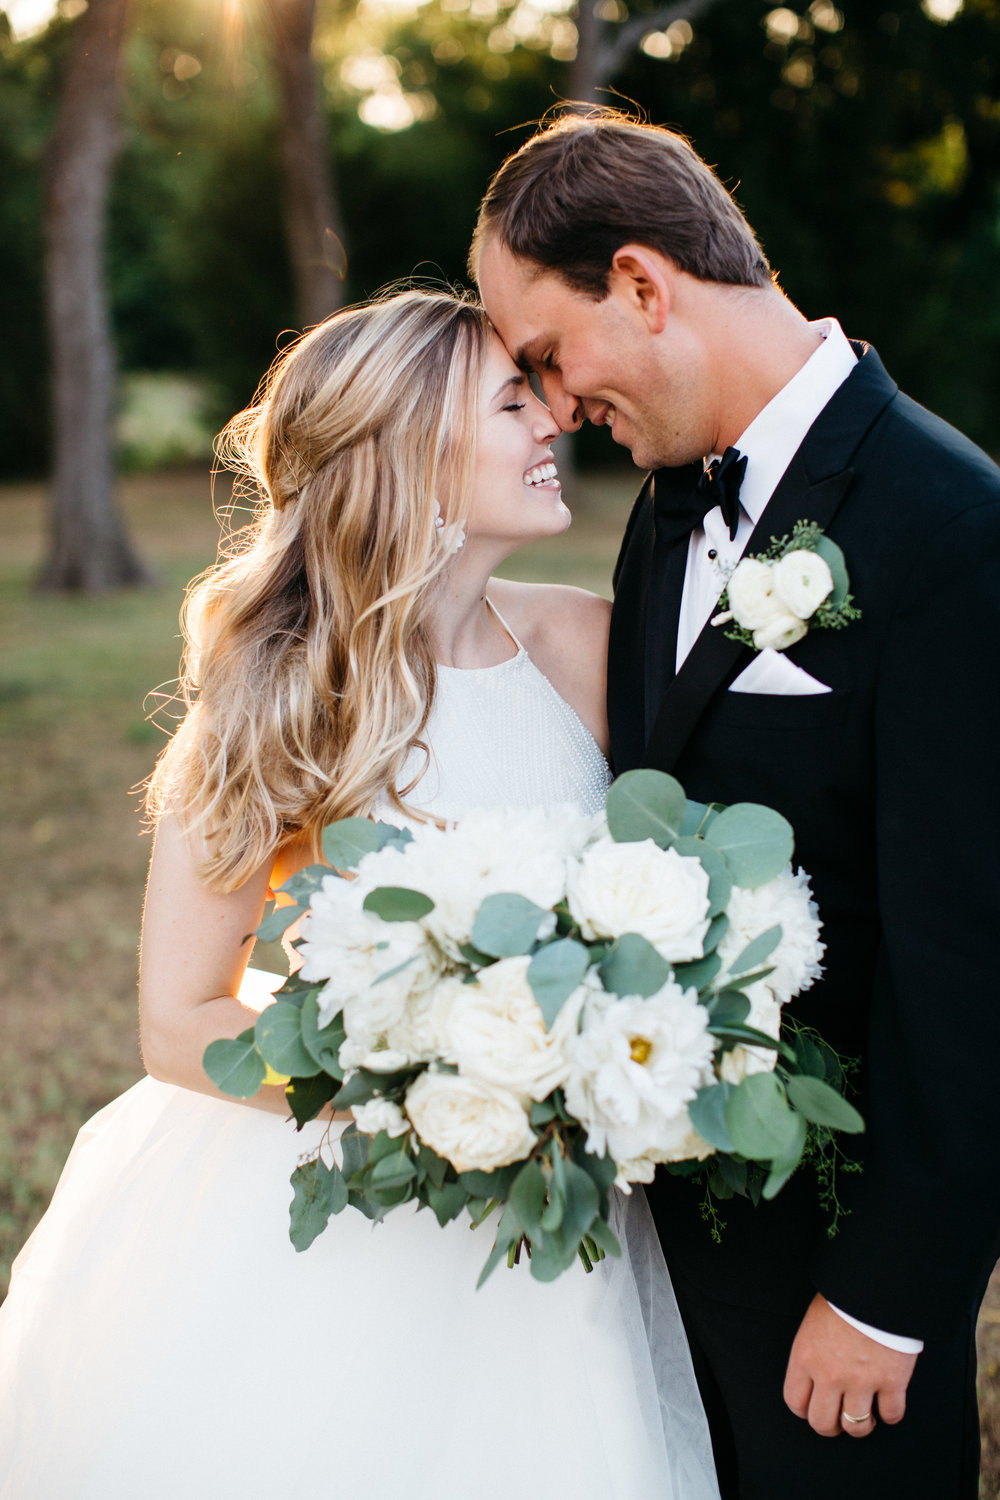 8 hour wedding day coverage - begins at $2500